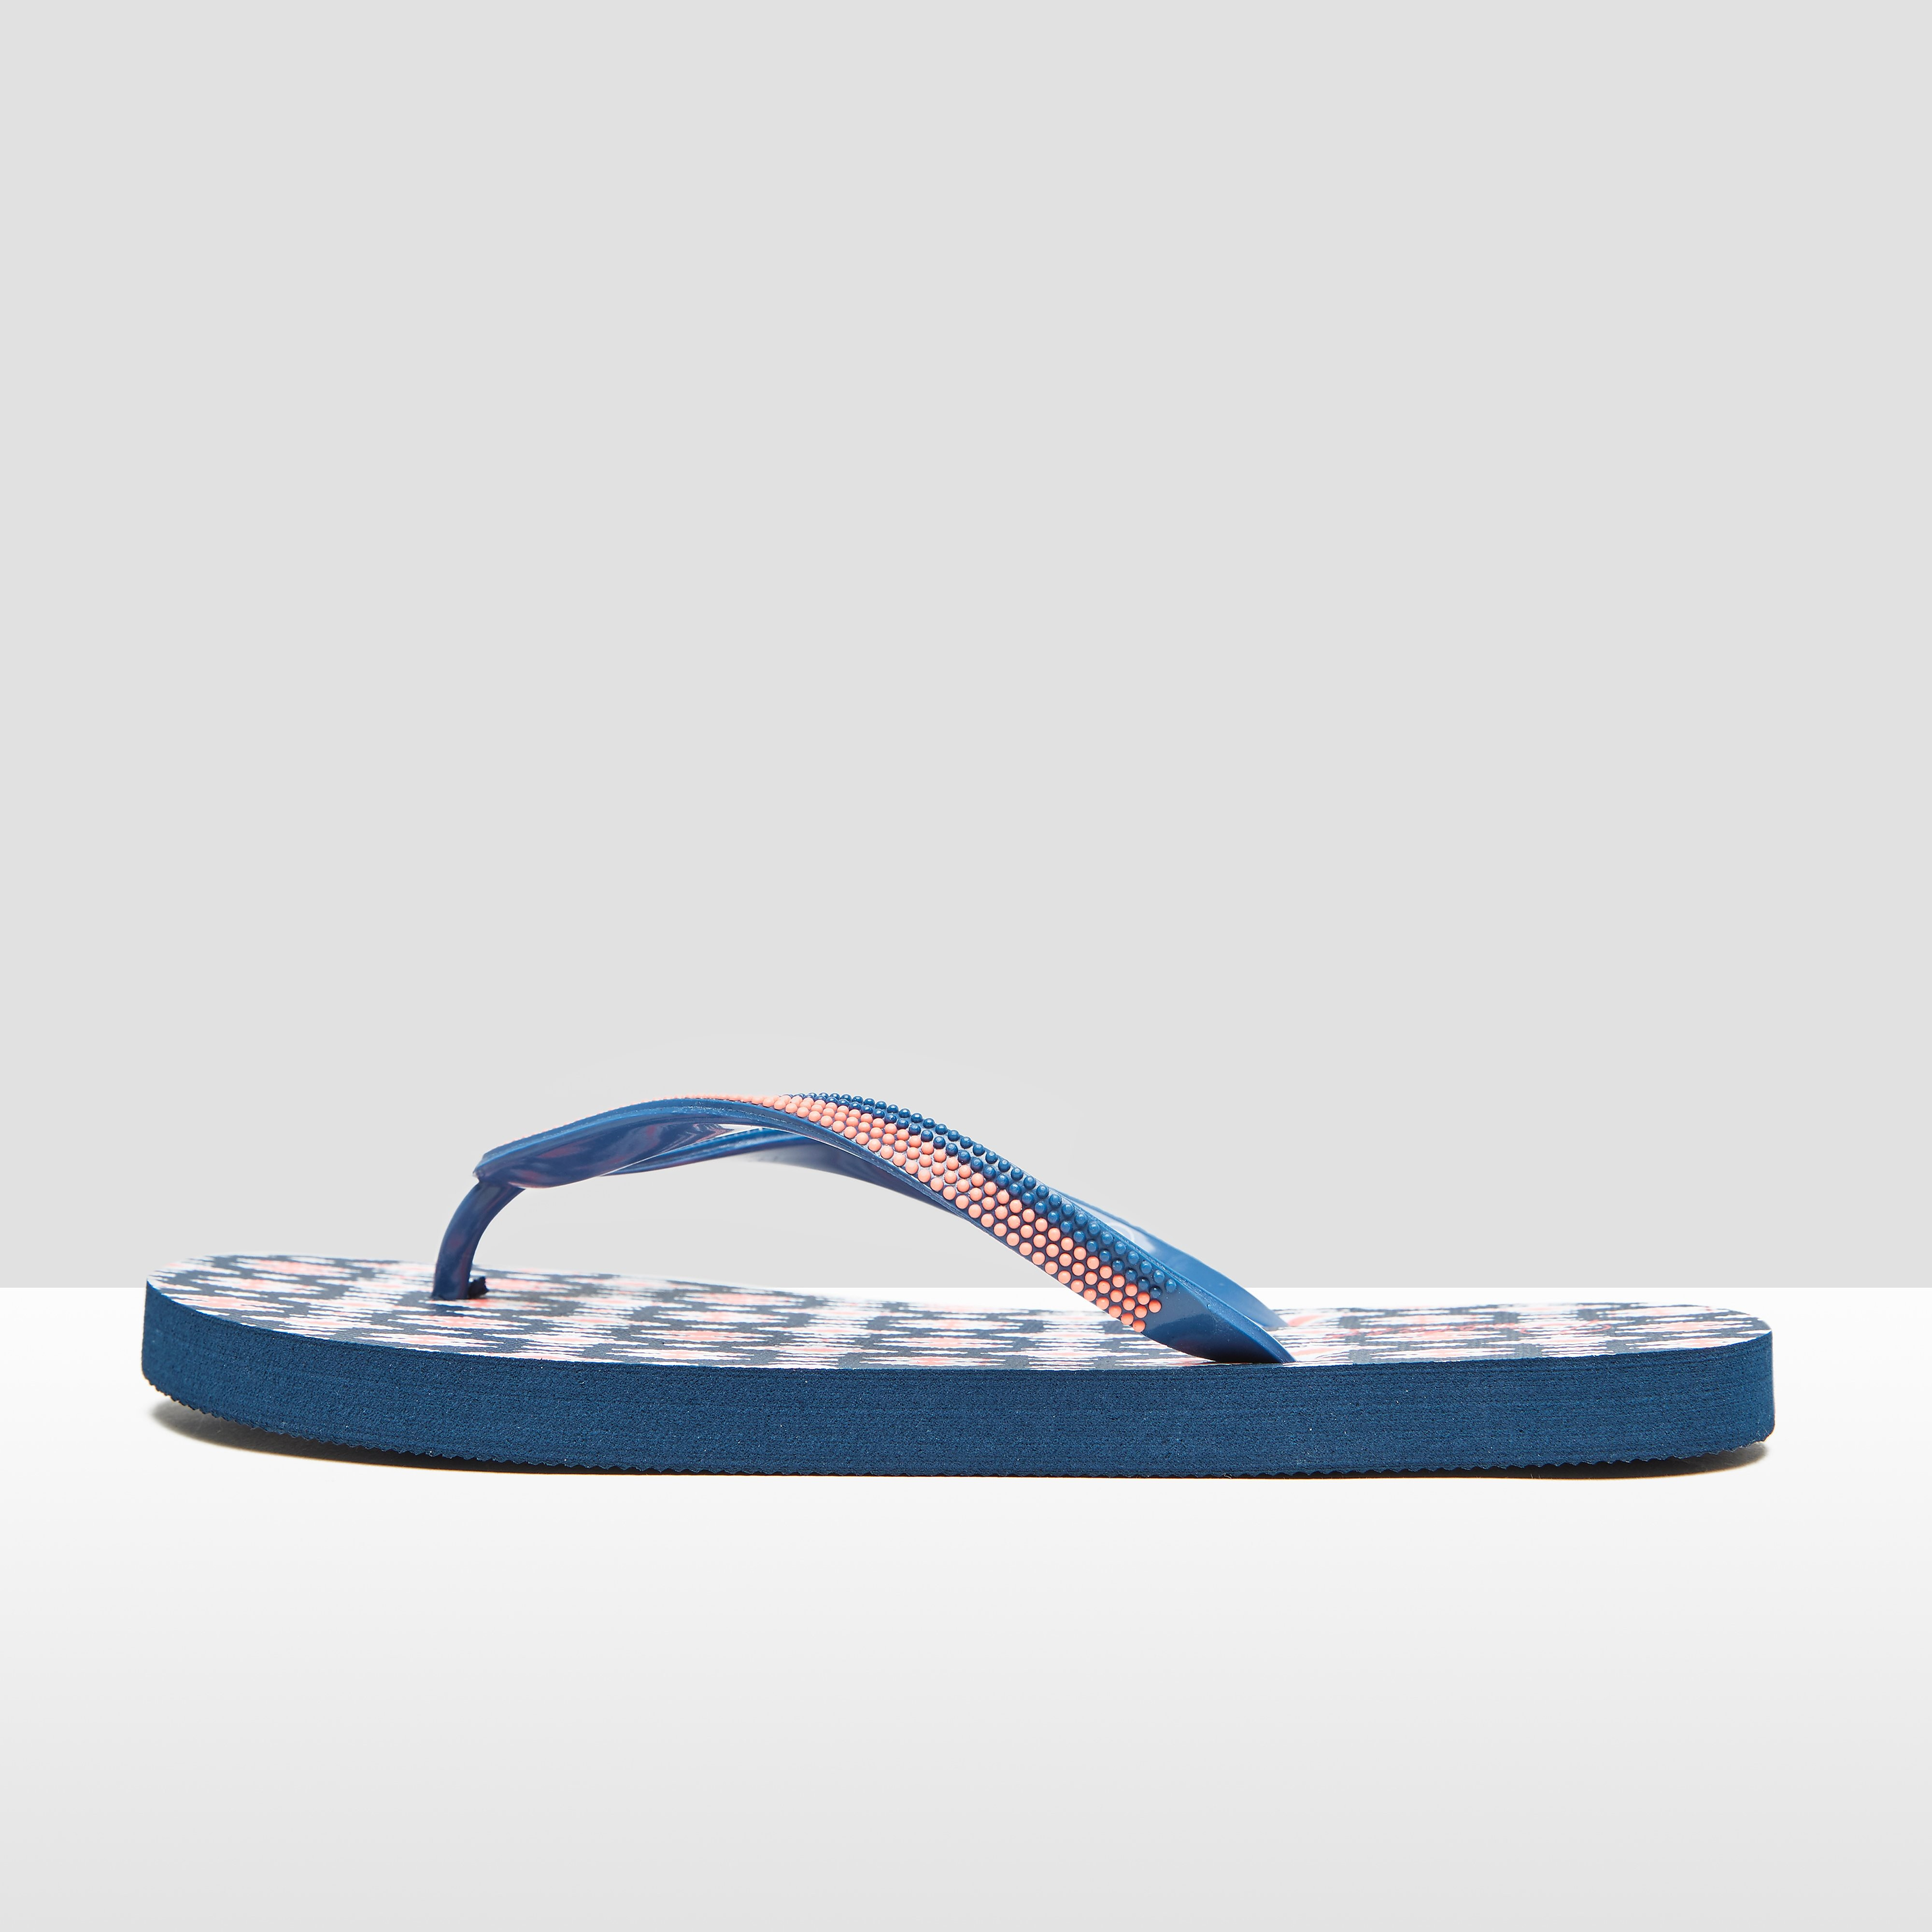 PROTEST LYMM SLIPPERS BLAUW DAMES